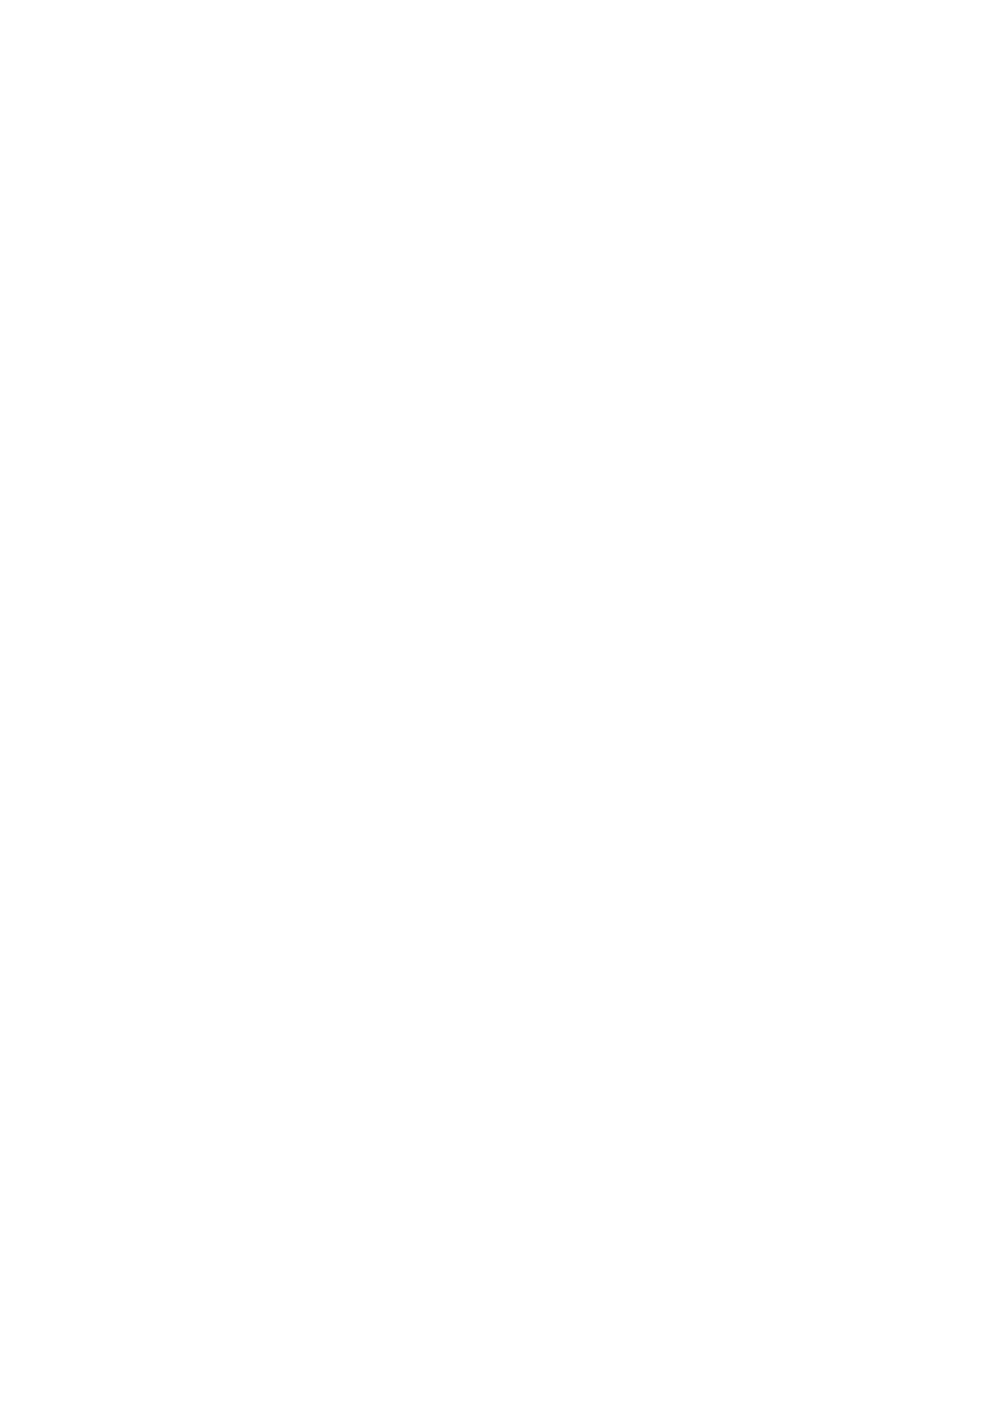 ACCOUTERFOUR-01.png